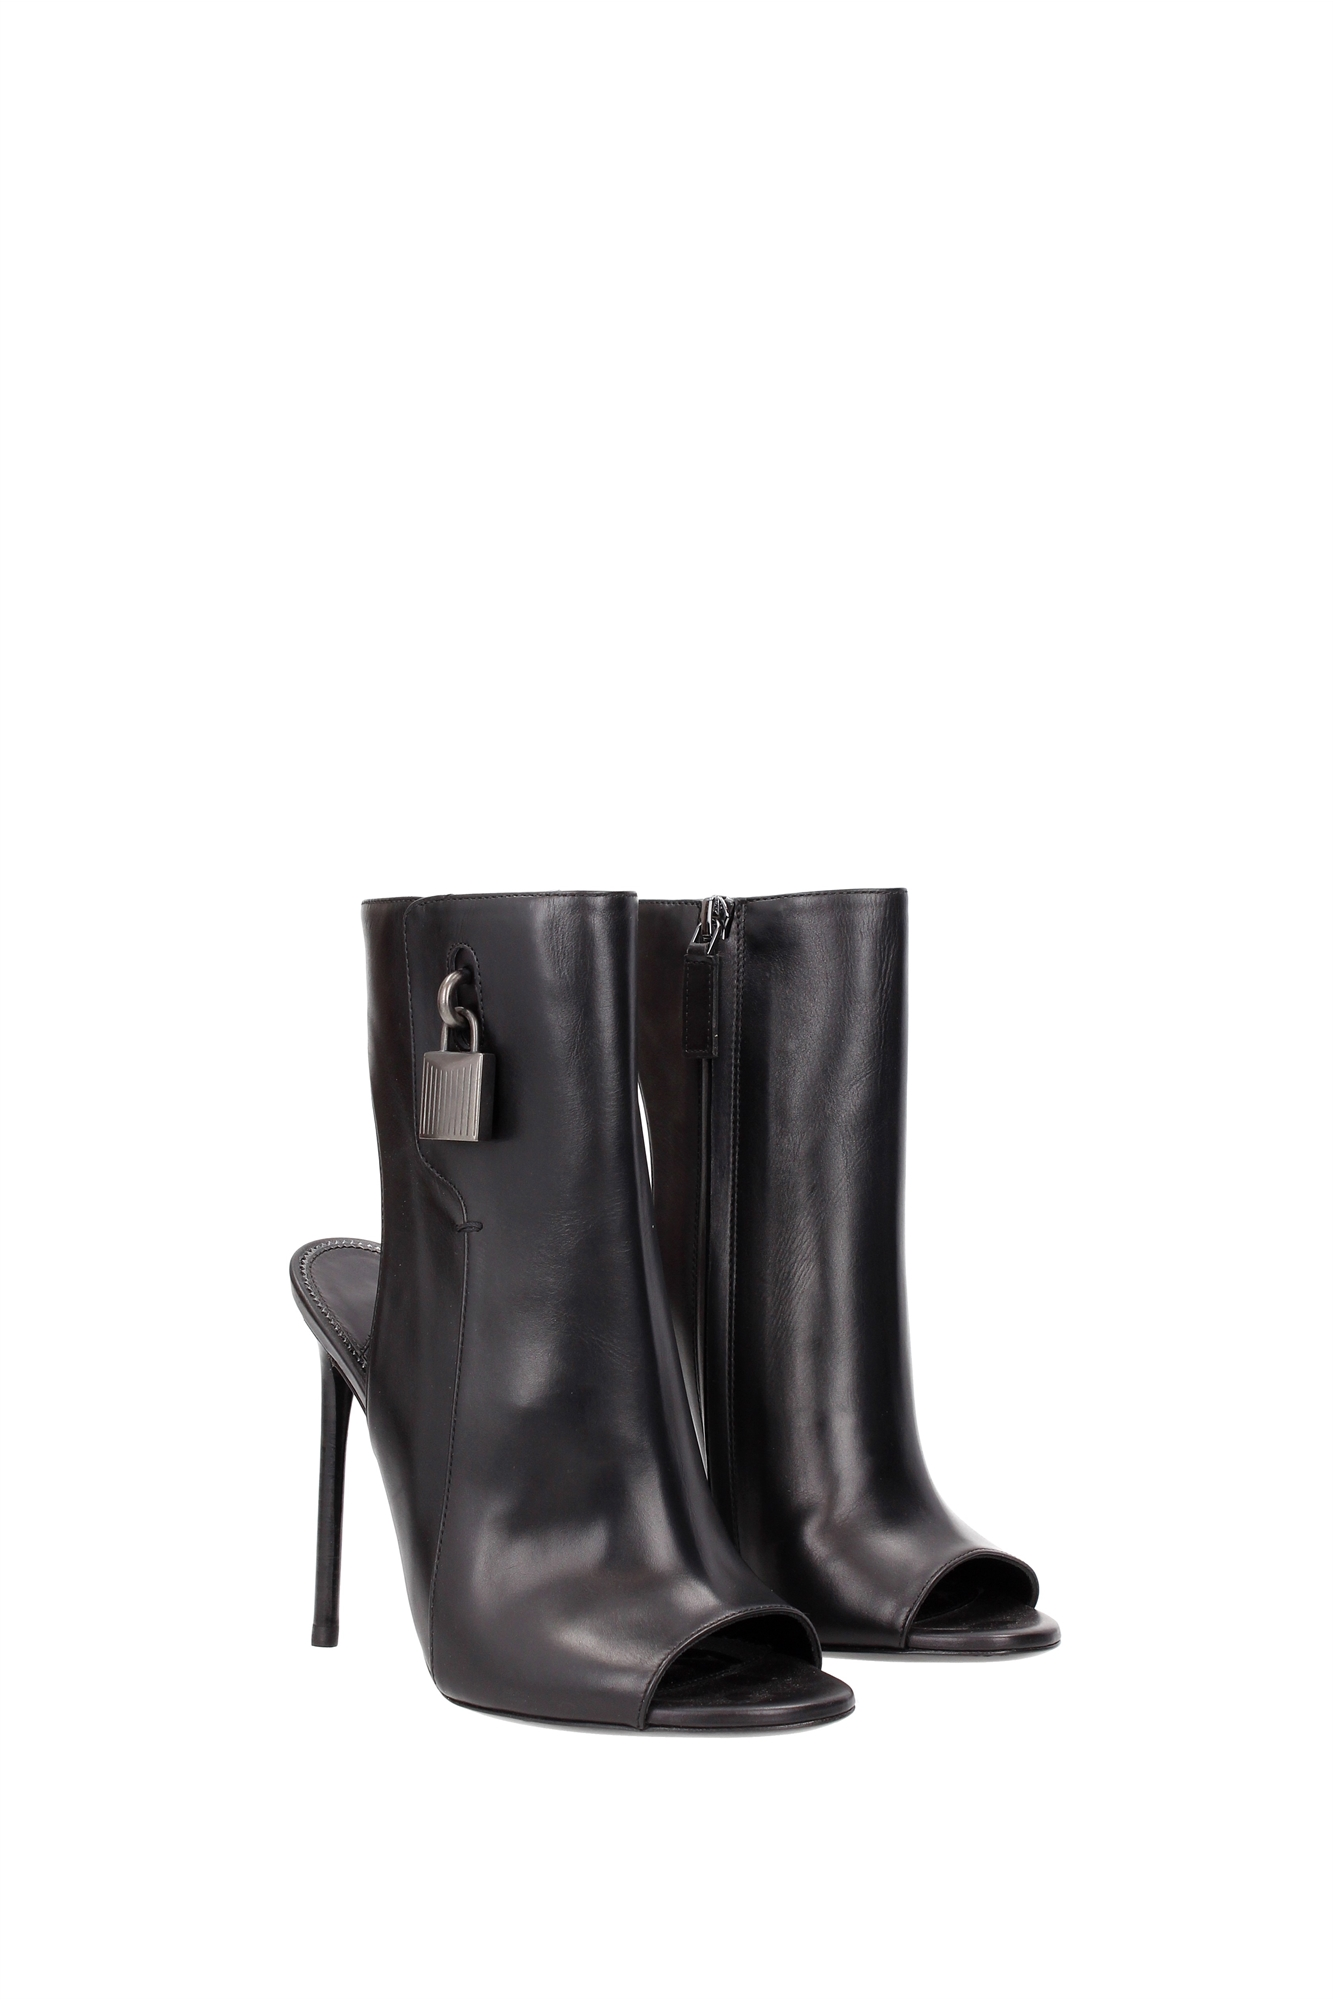 ankle boots tom ford leather black 116w1667rscablk